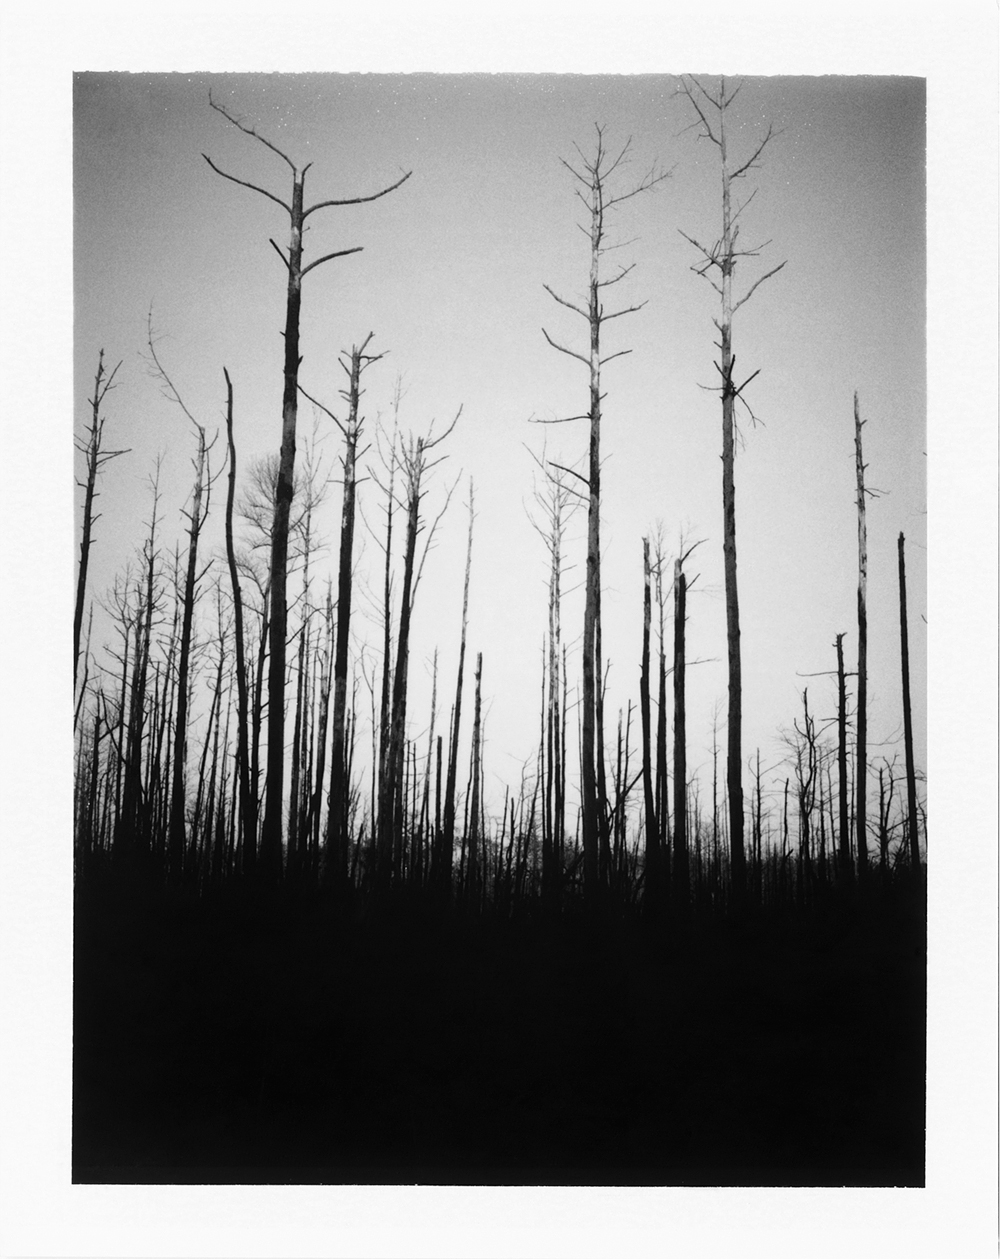 Surviving Trees After Prescribed Burn, Somewhere in the South